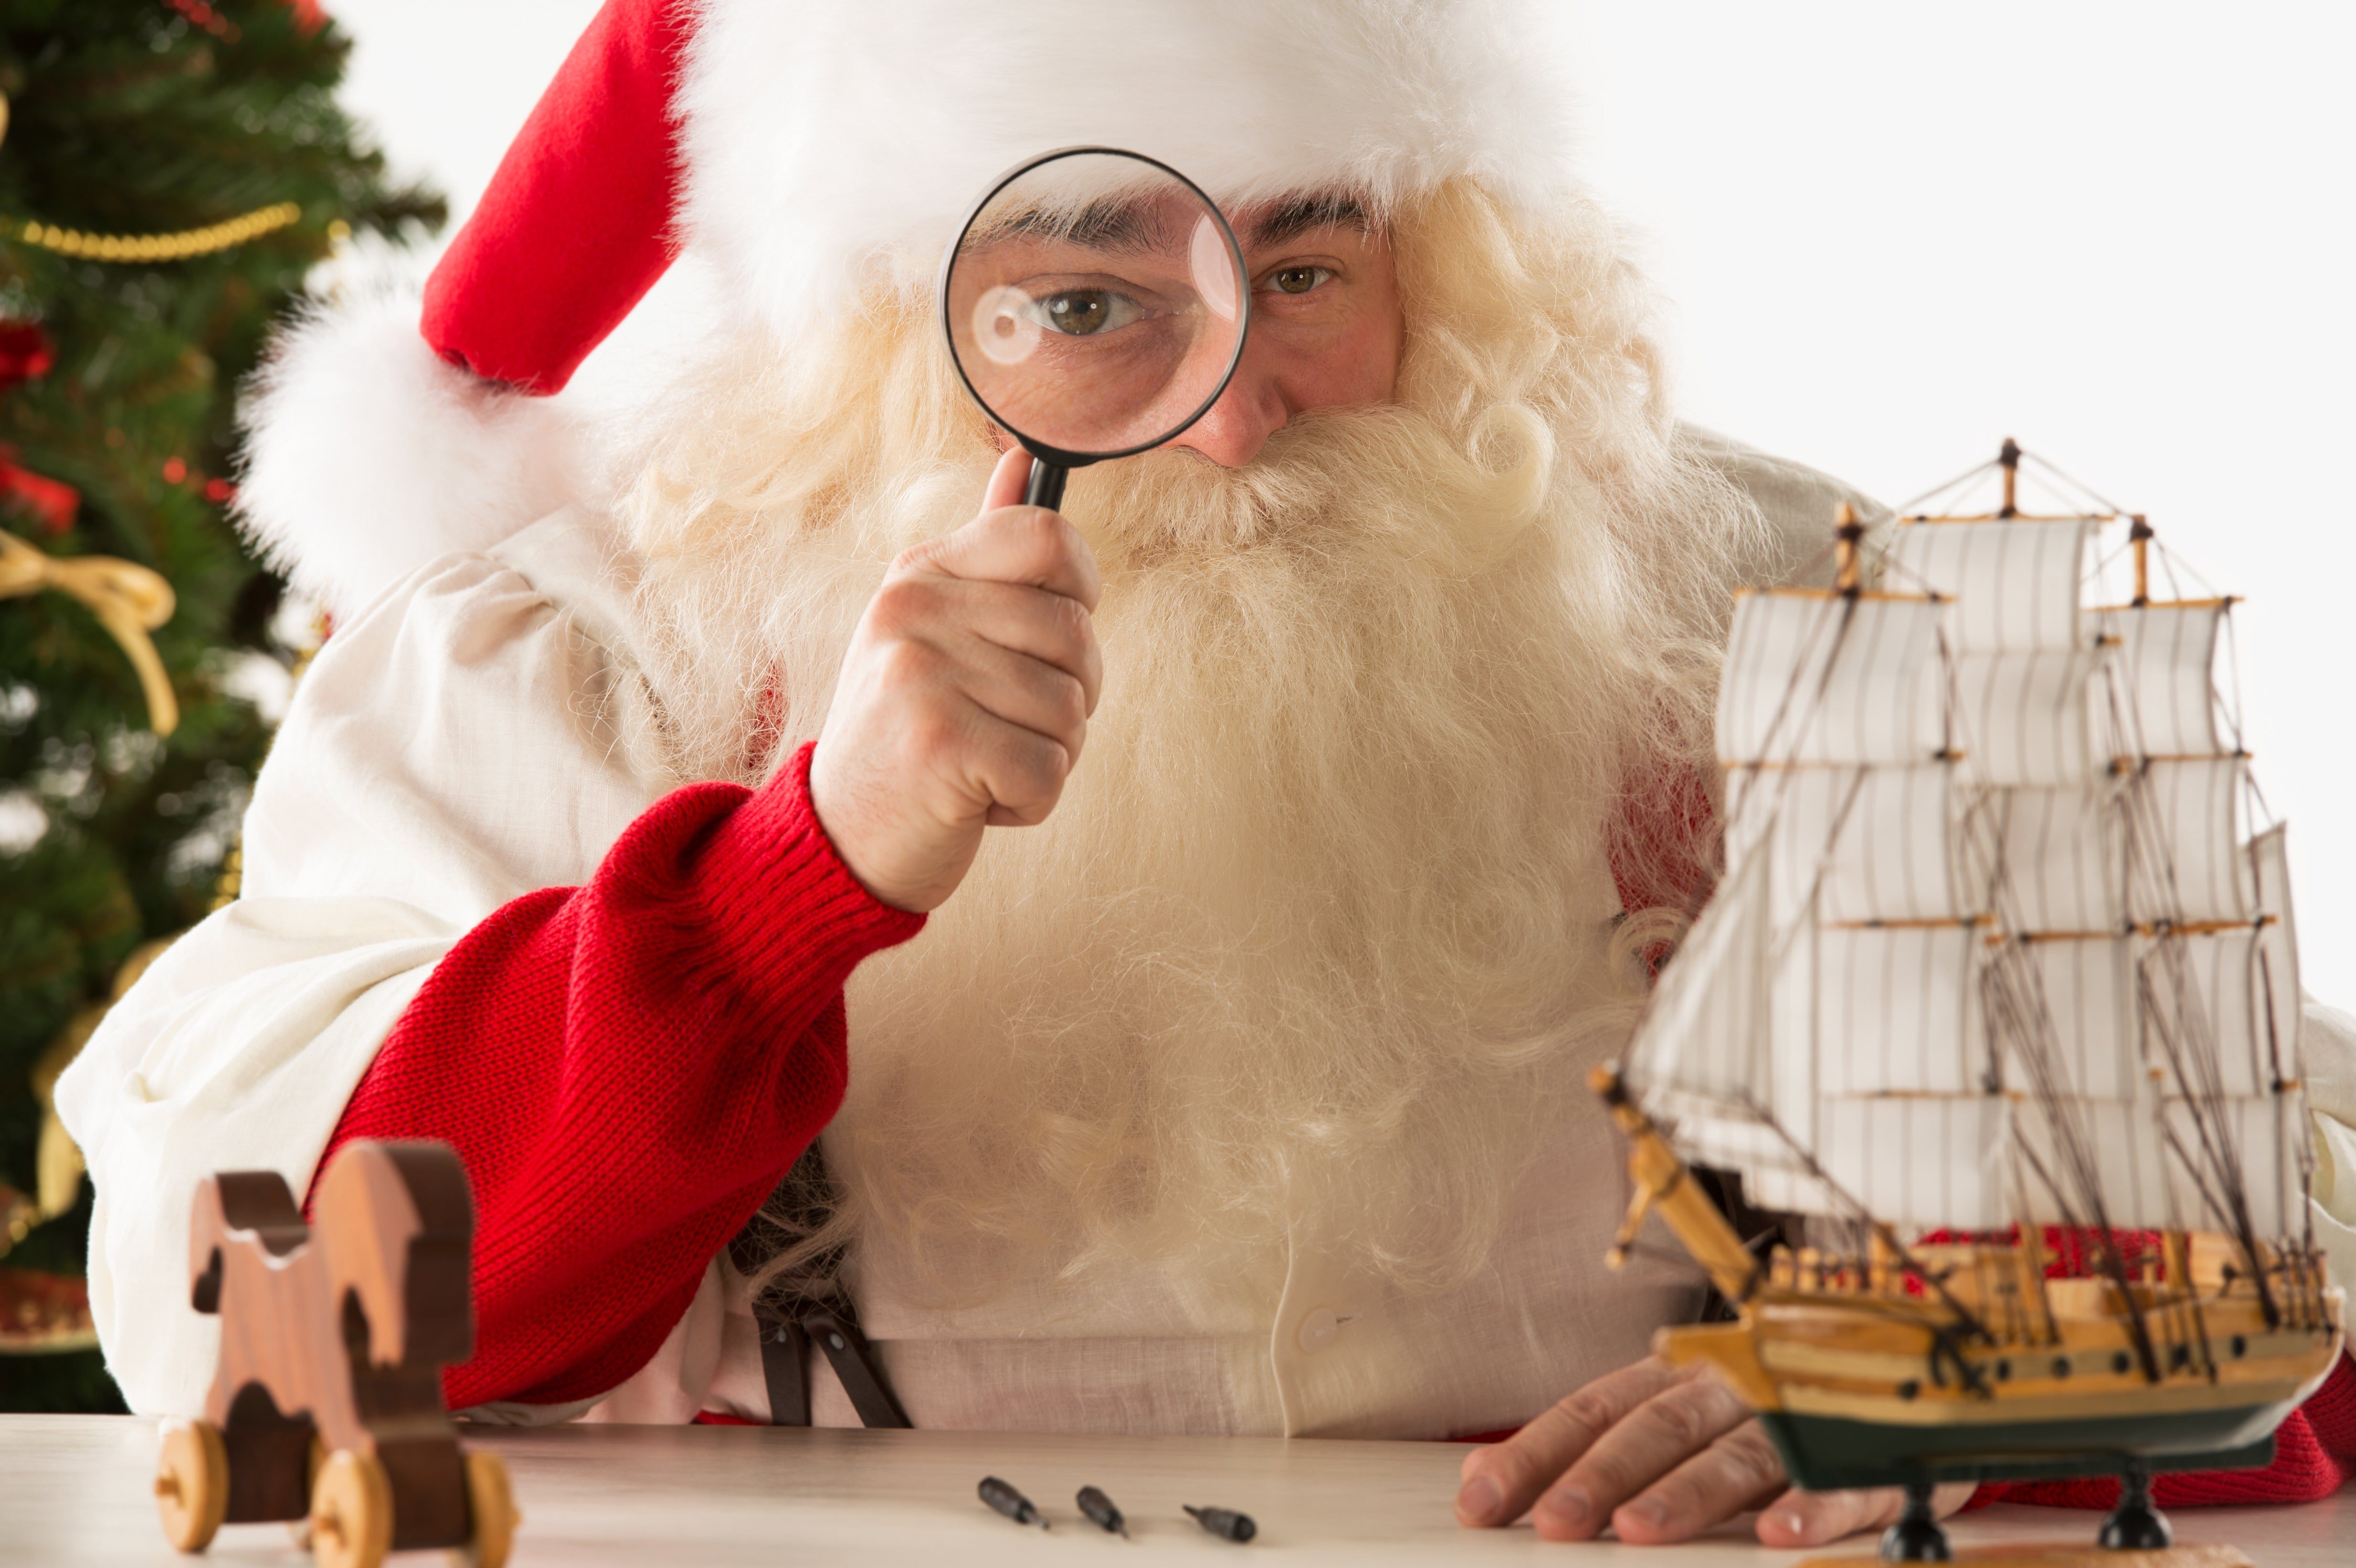 Santa with Magnifying Glass